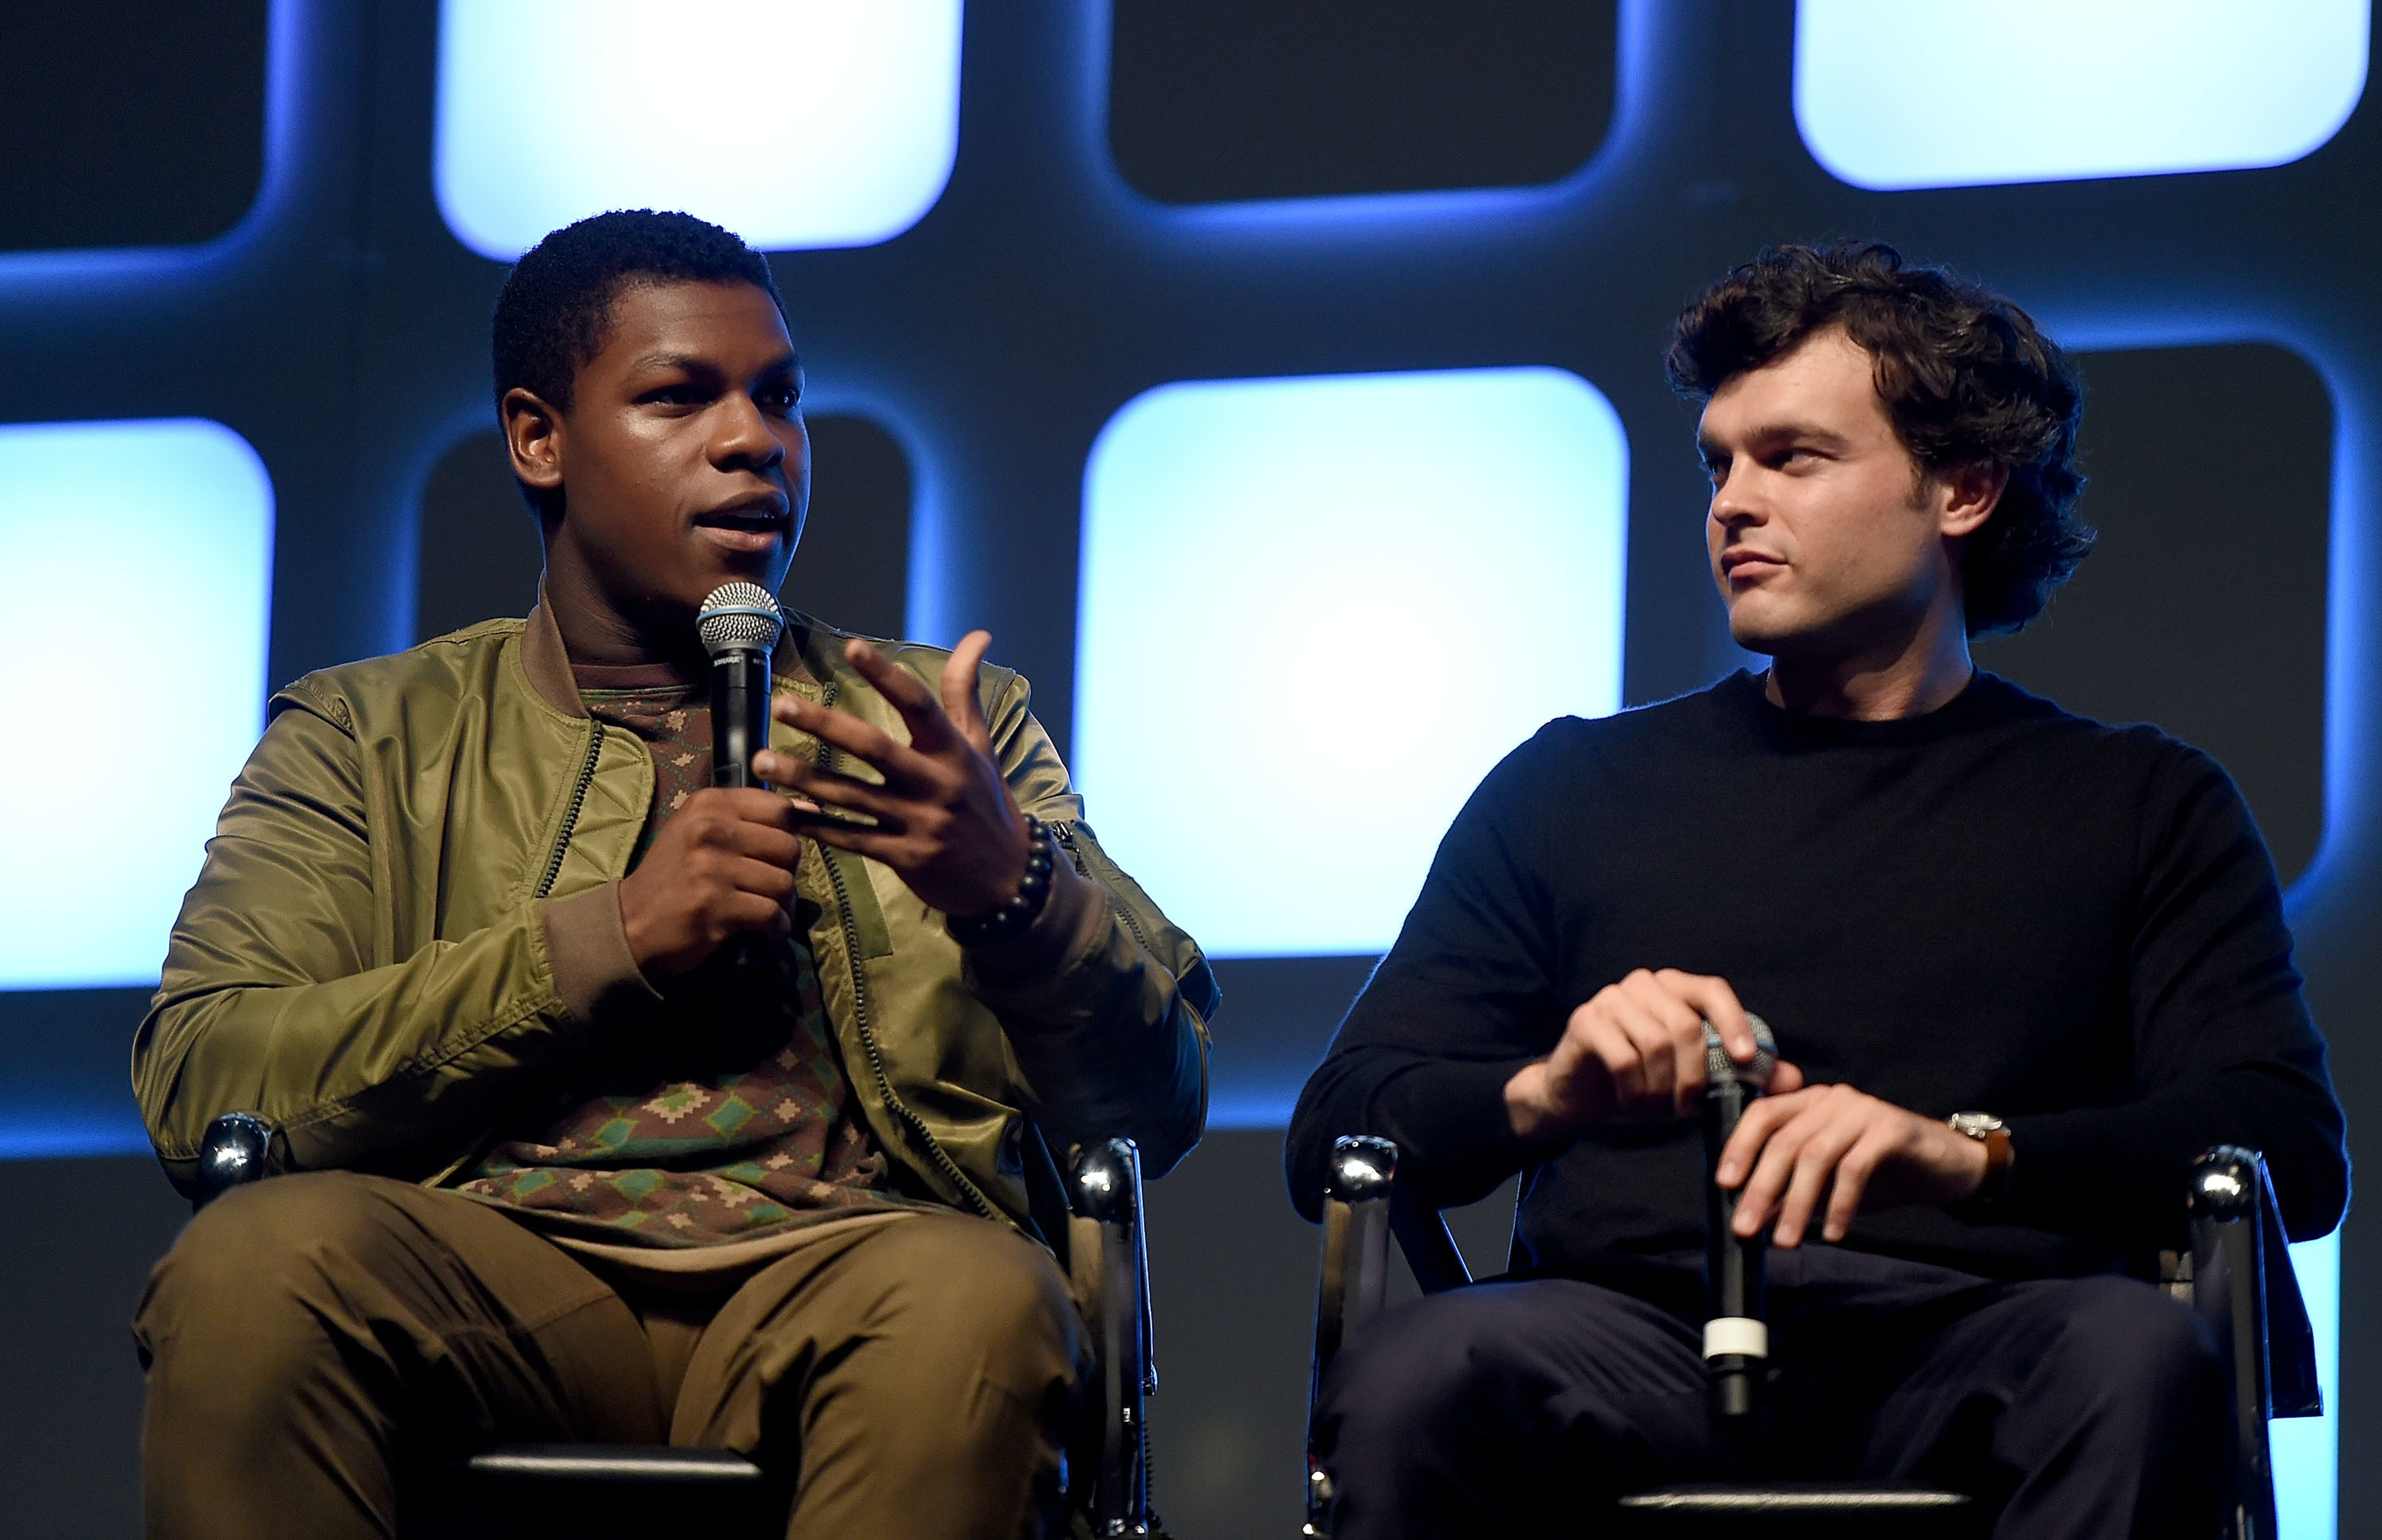 LONDON, ENGLAND - JULY 17:  John Boyega (L) and Alden Ehrenreich, who will play Han Solo, on stage during Future Directors Panel at the Star Wars Celebration 2016 at ExCel on July 17, 2016 in London, England.